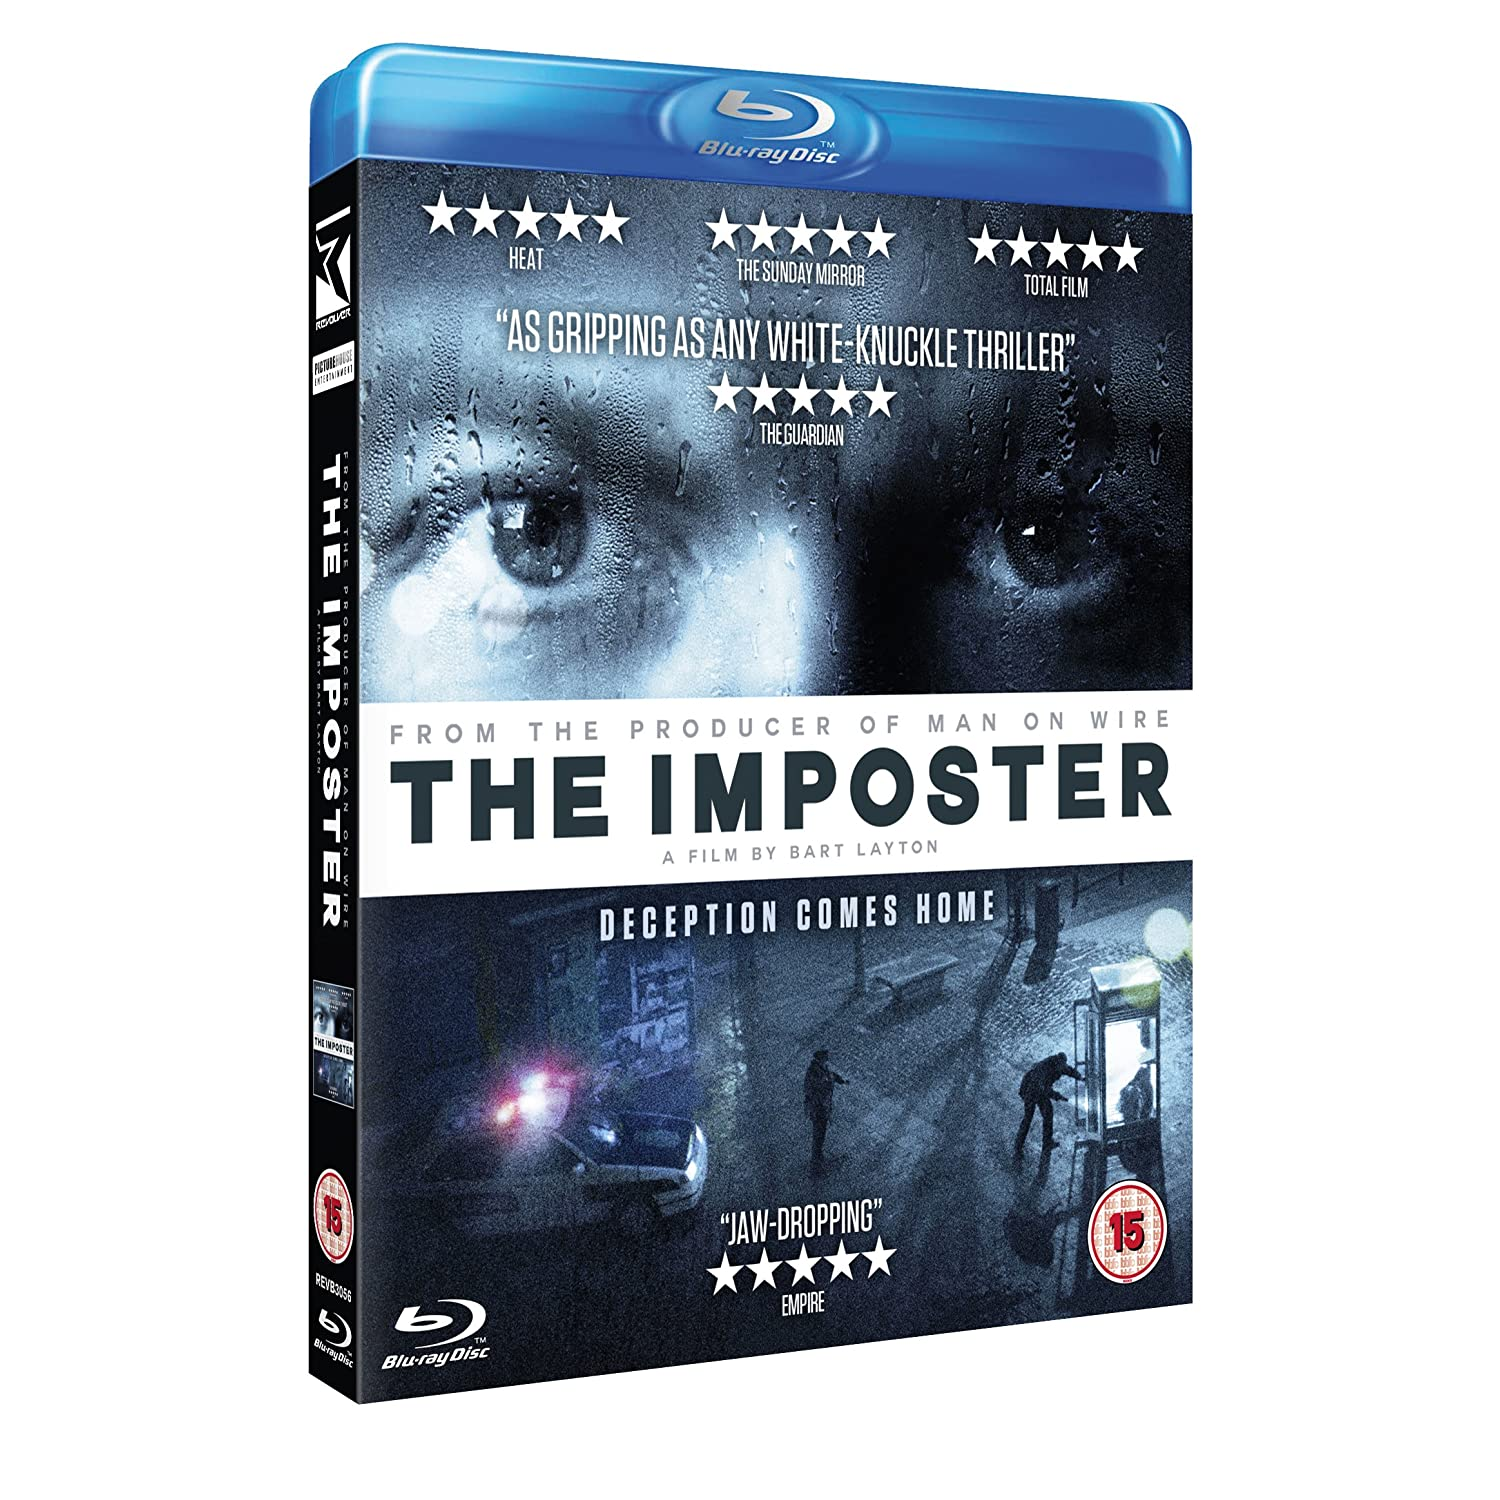 Nothing Fake About Imposter Reviews